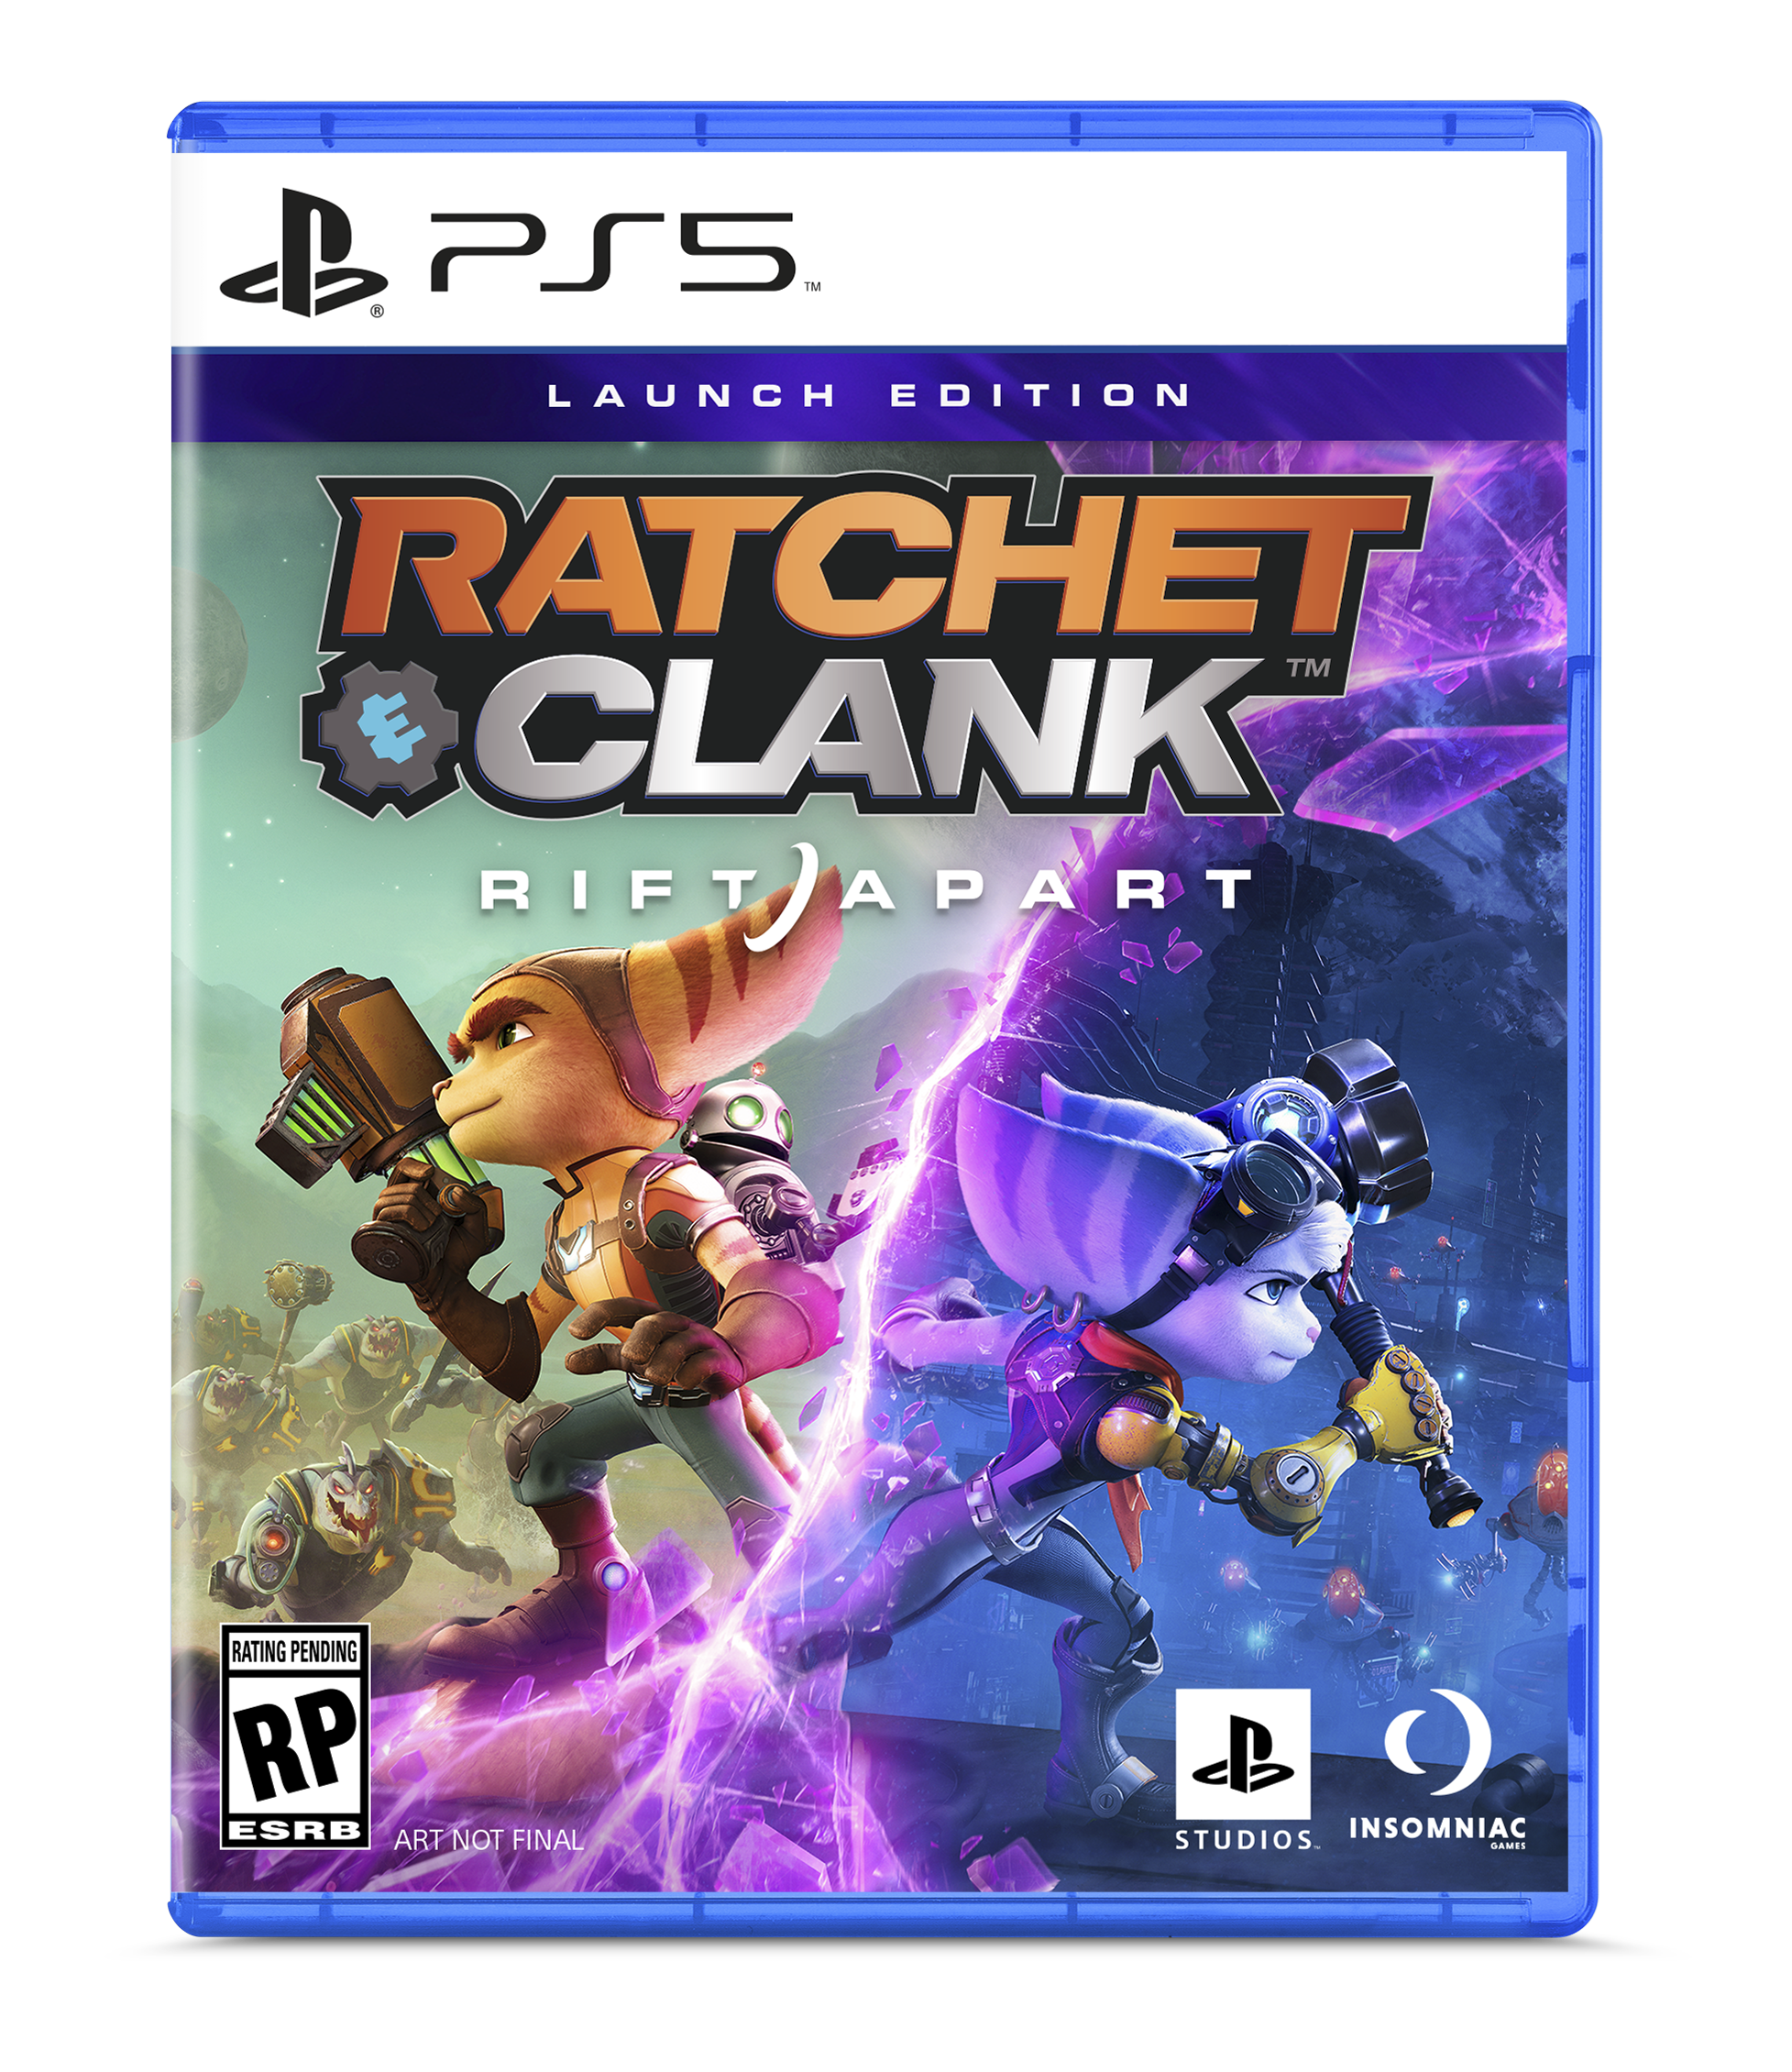 ratchet and clank rift apart blu ray